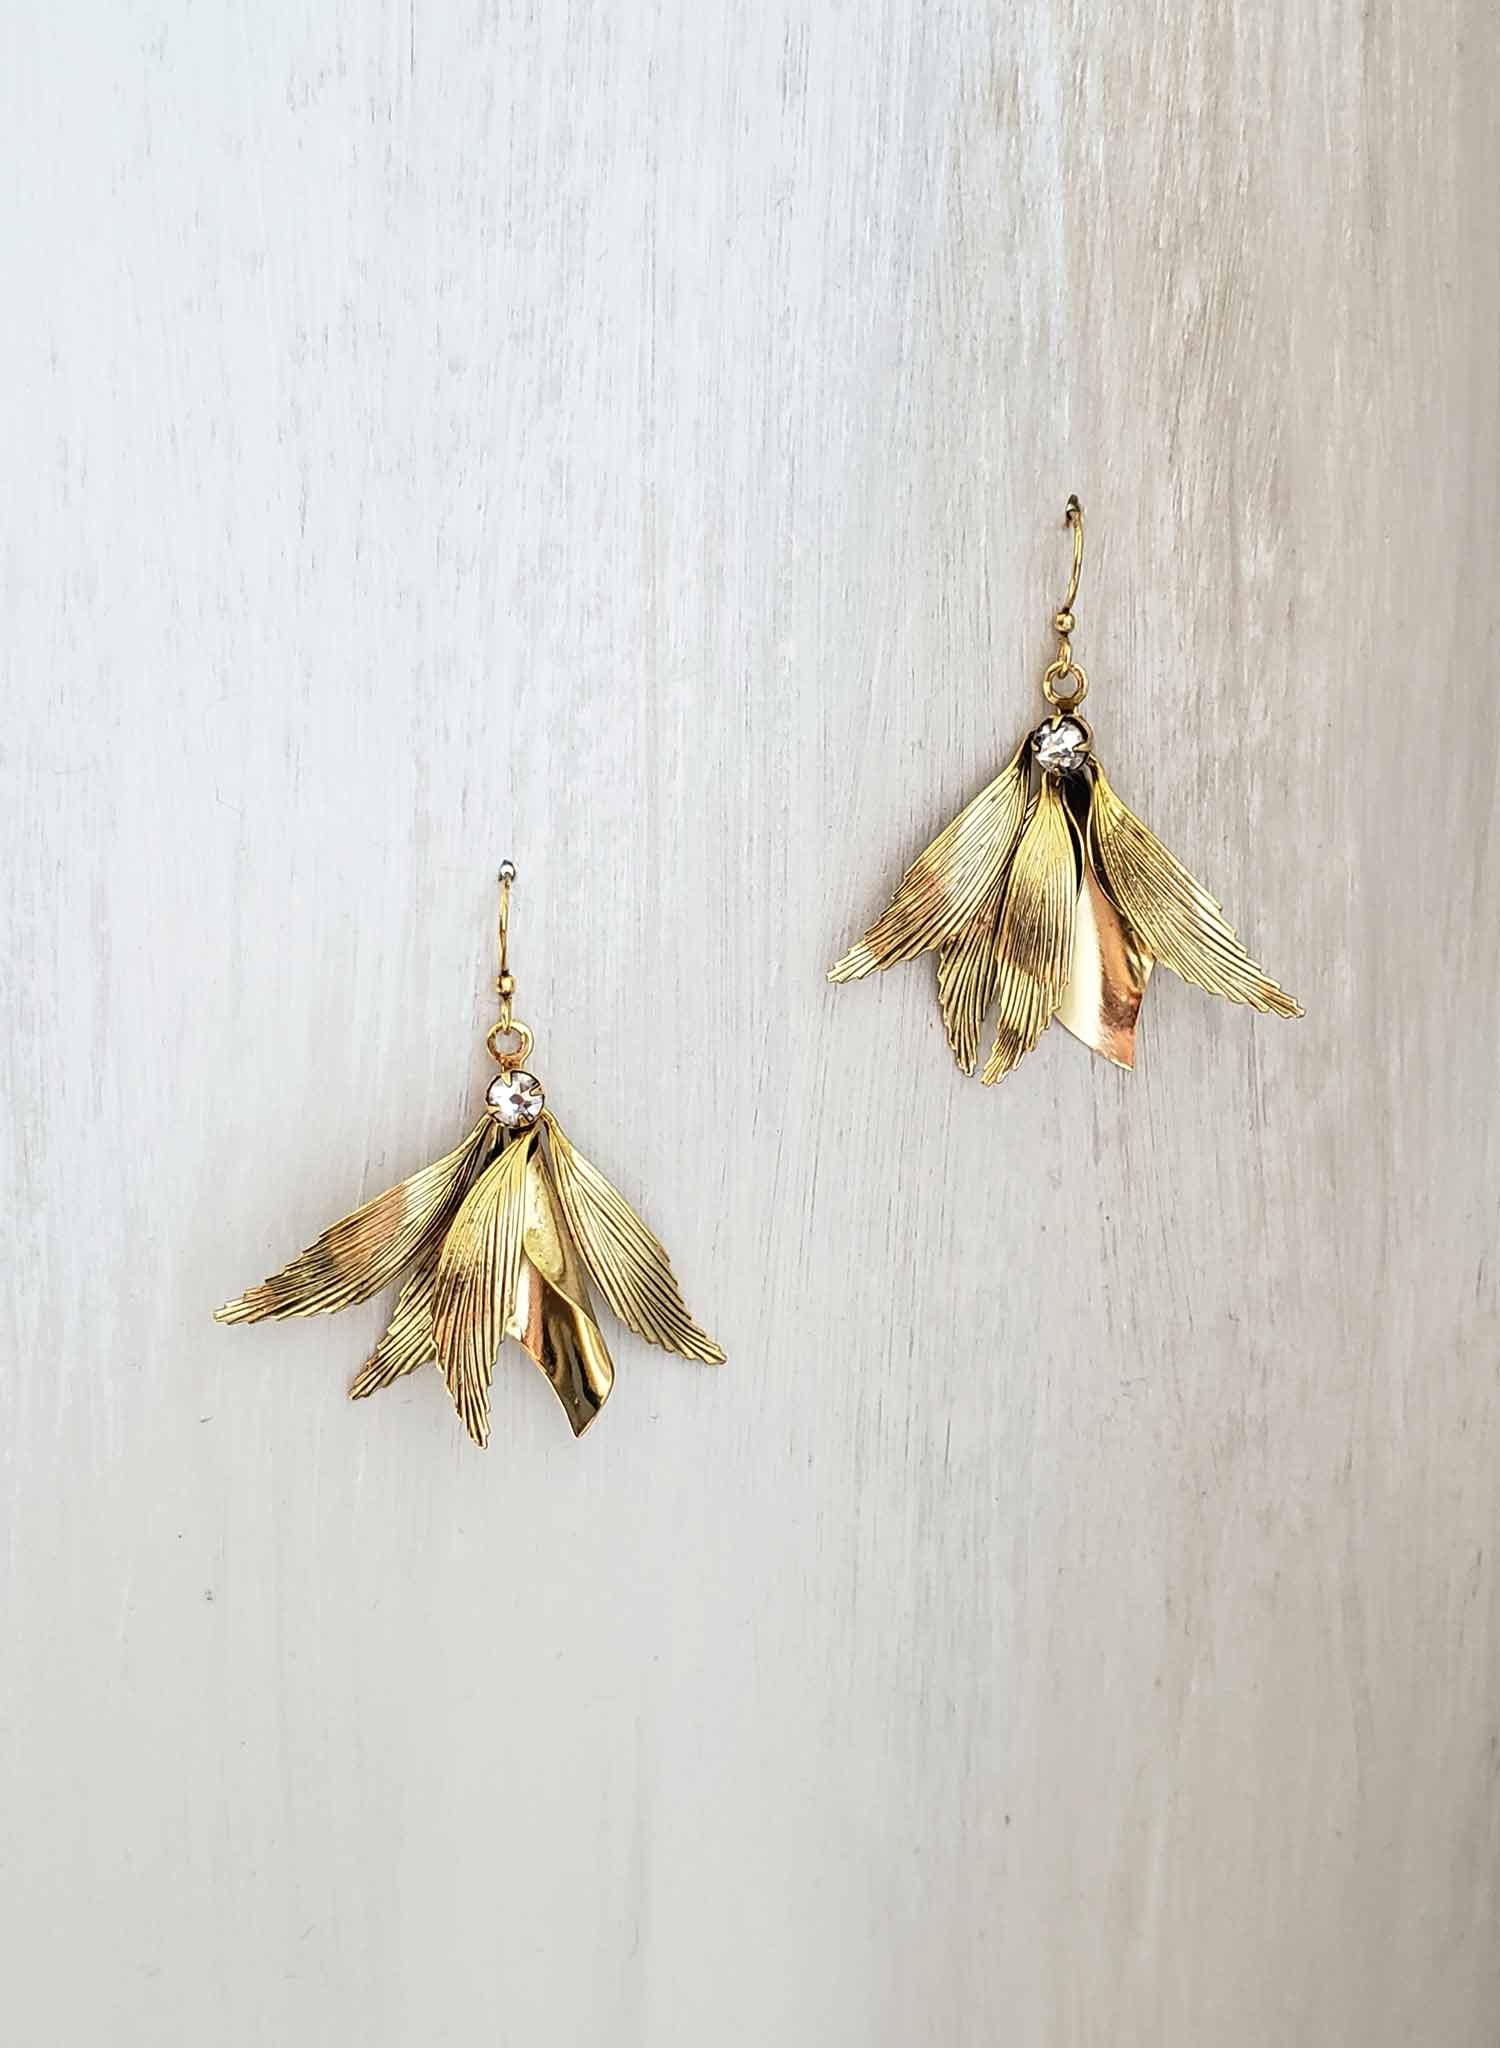 Grecian dainty wing earrings - Style #2073